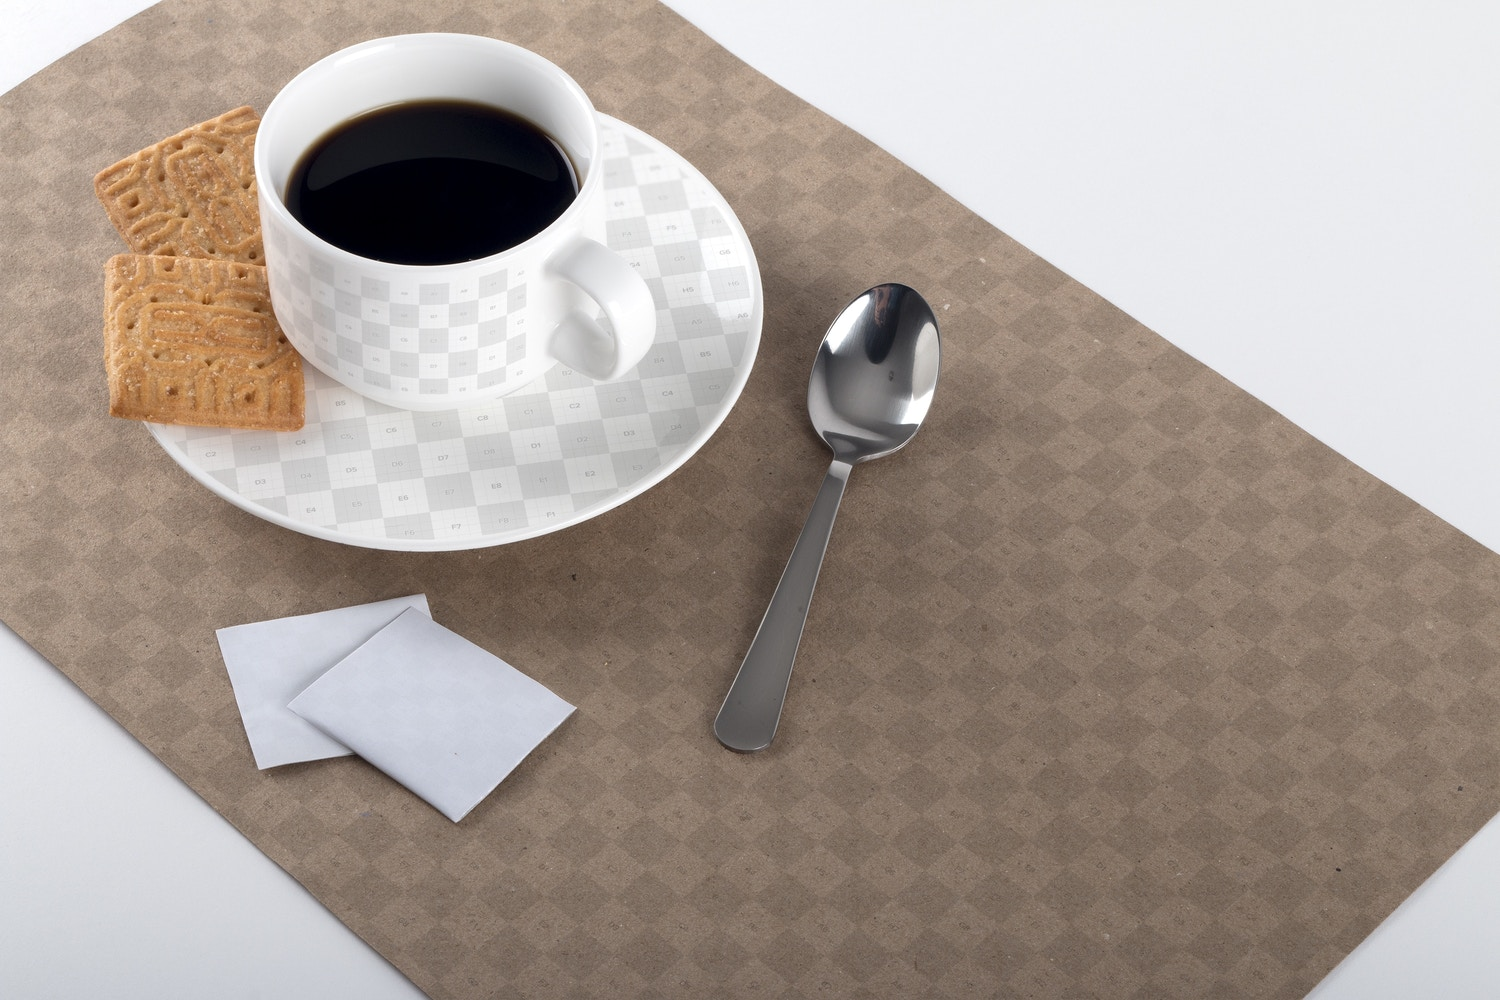 Coffee Cup and Placemat Mockup 02